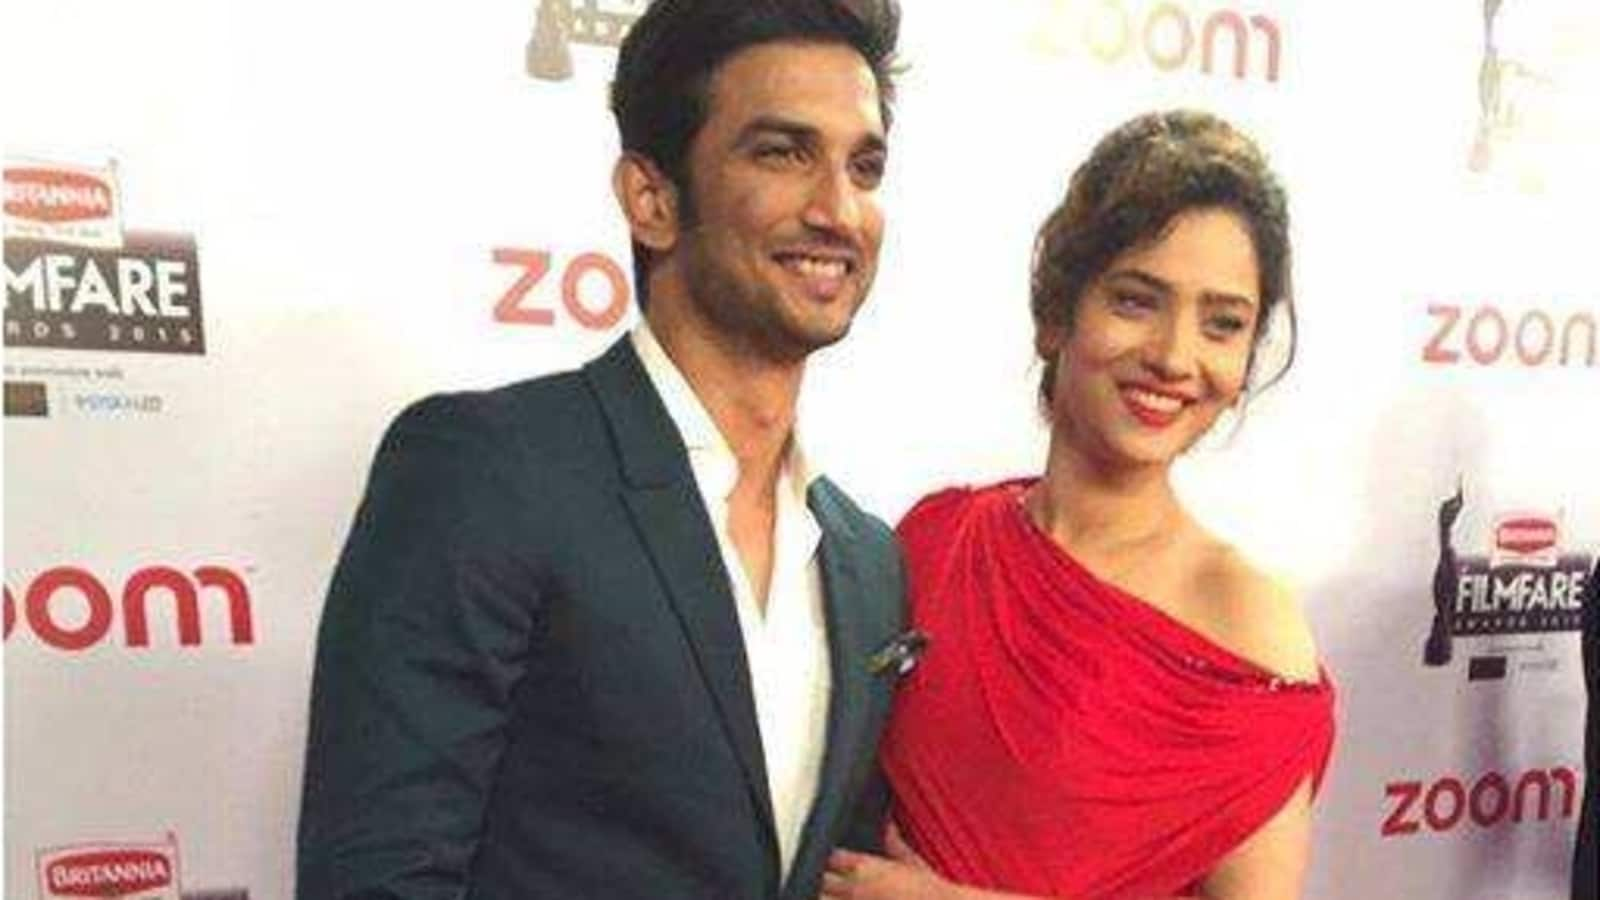 Ankita Lokhande says she gave up Happy New Year, Bajirao Mastani for Sushant Singh Rajput: 'I was trying to build a man' - Hindustan Times